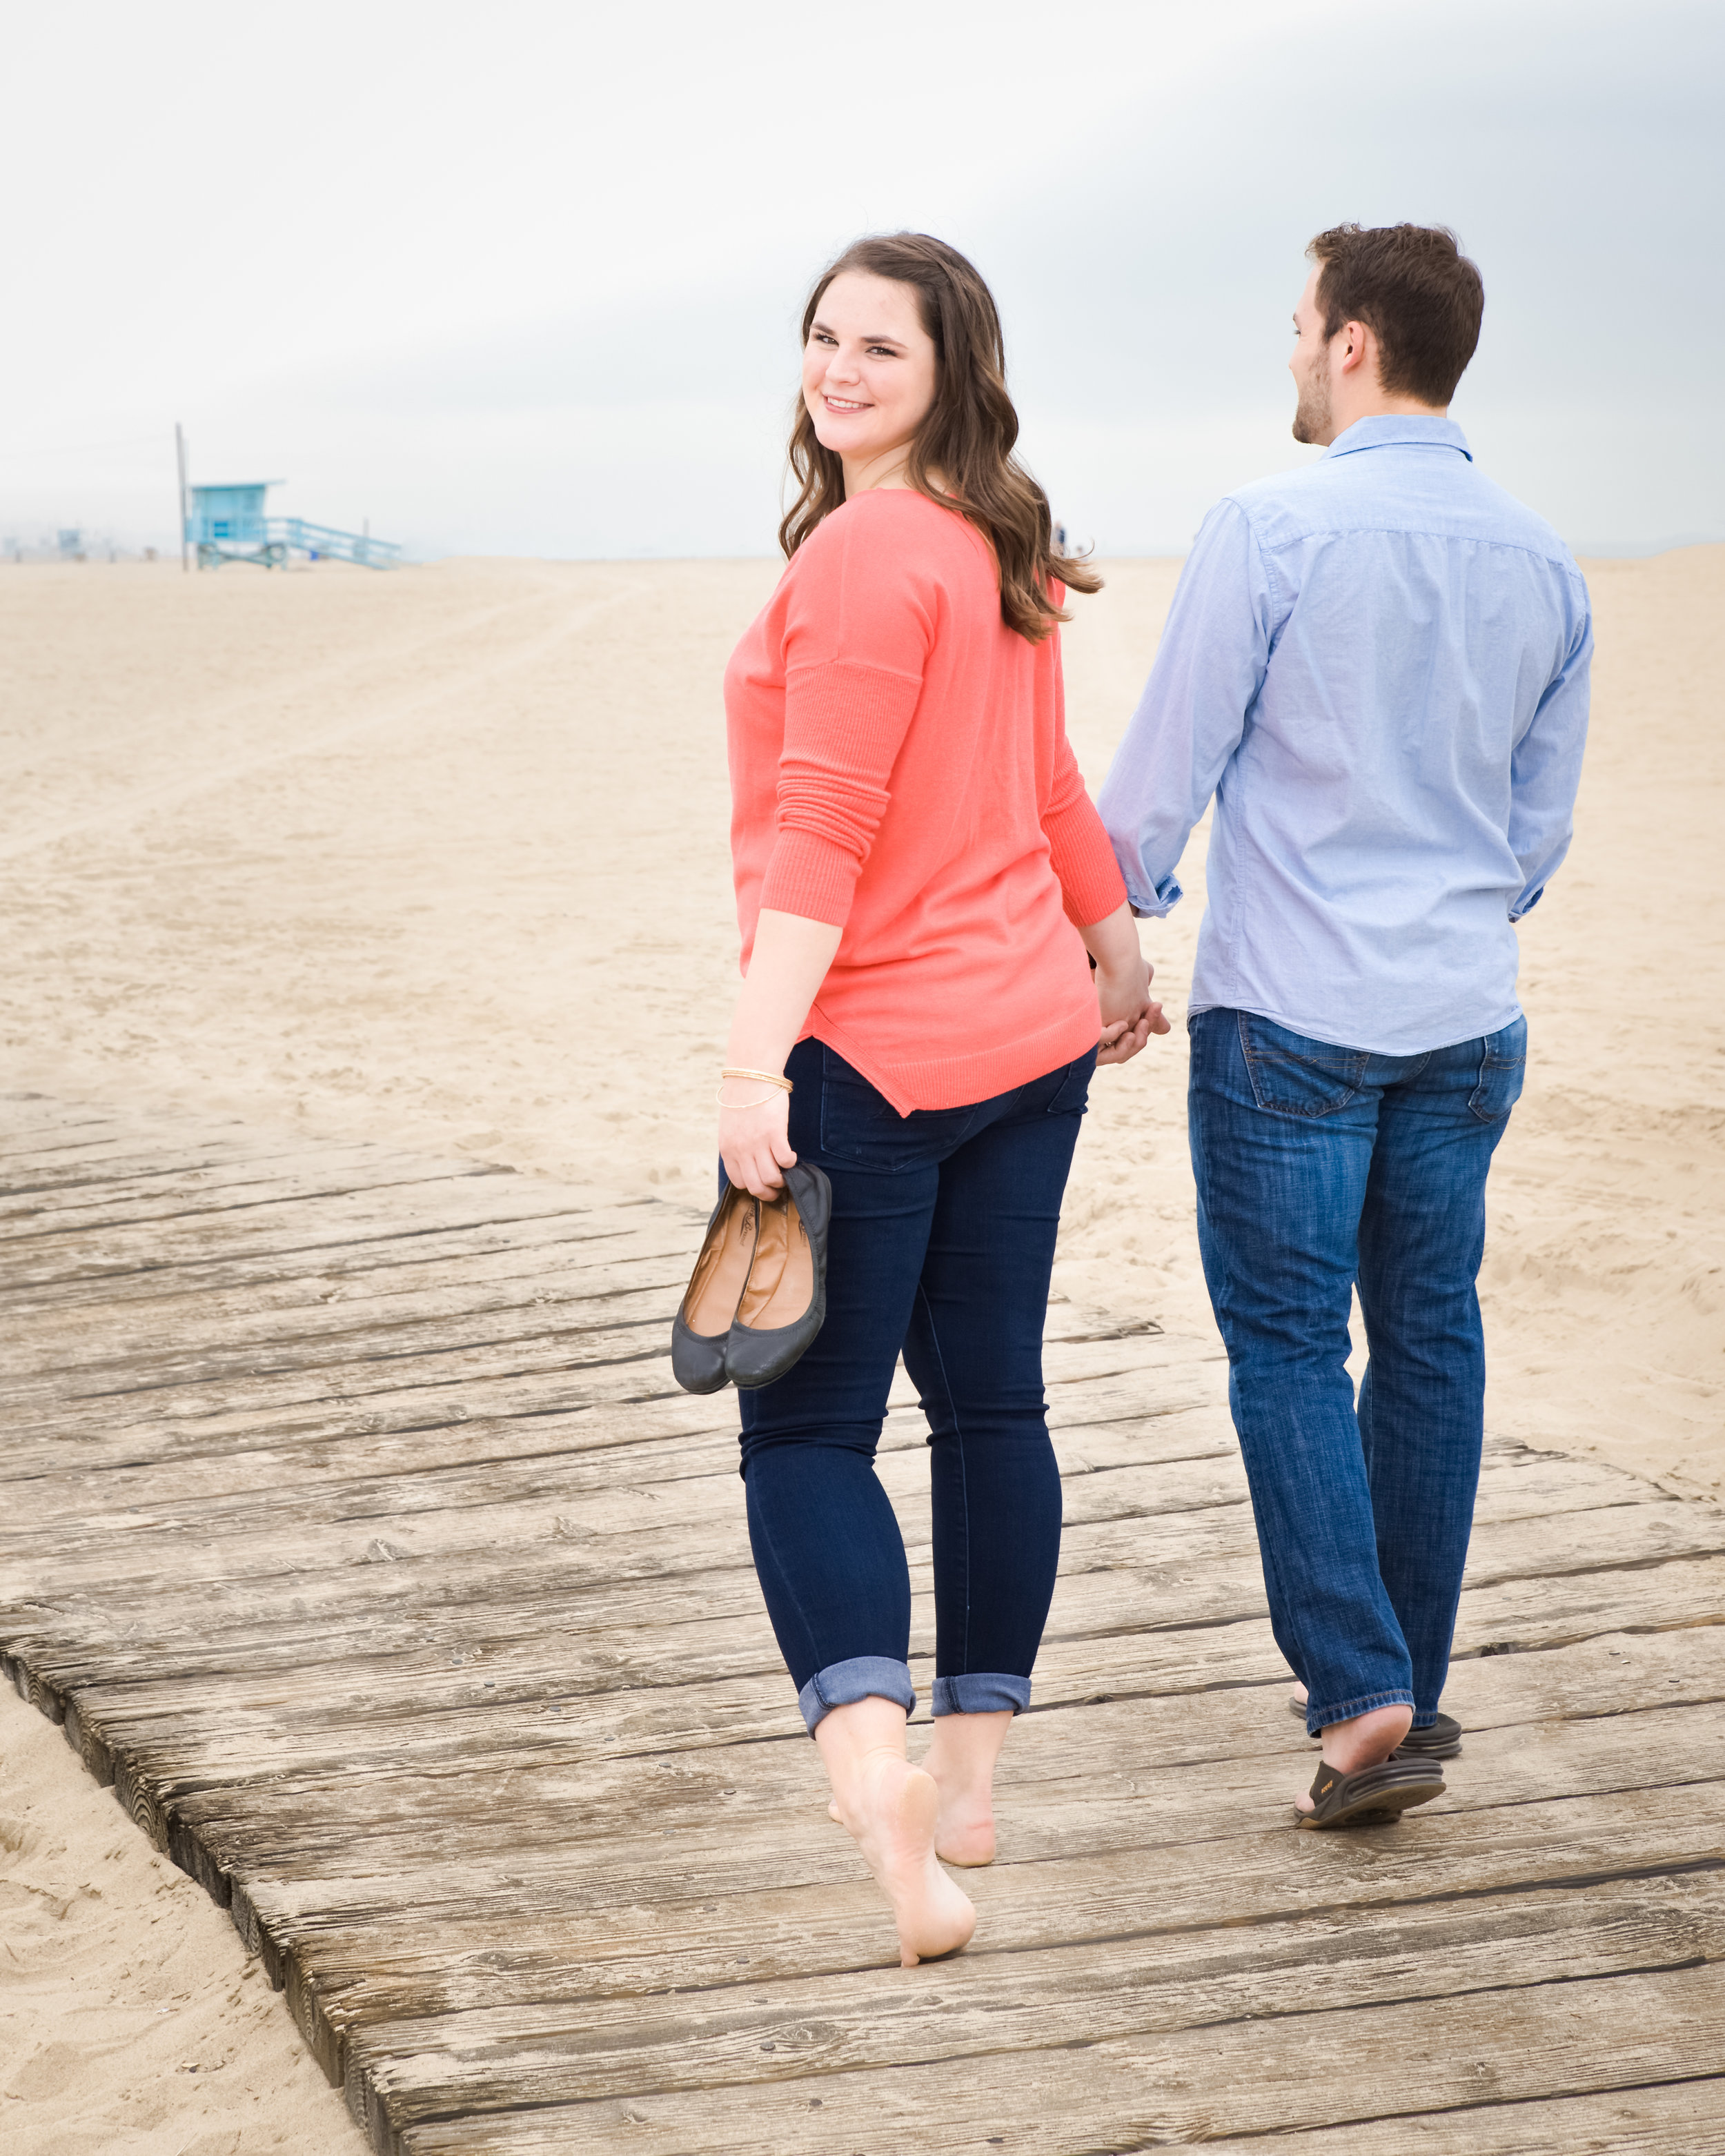 221_2016_January_23-Mary_AJ_SantaMonicaPier_Proposal_Engagement_Shoot-14895-Edit.jpg